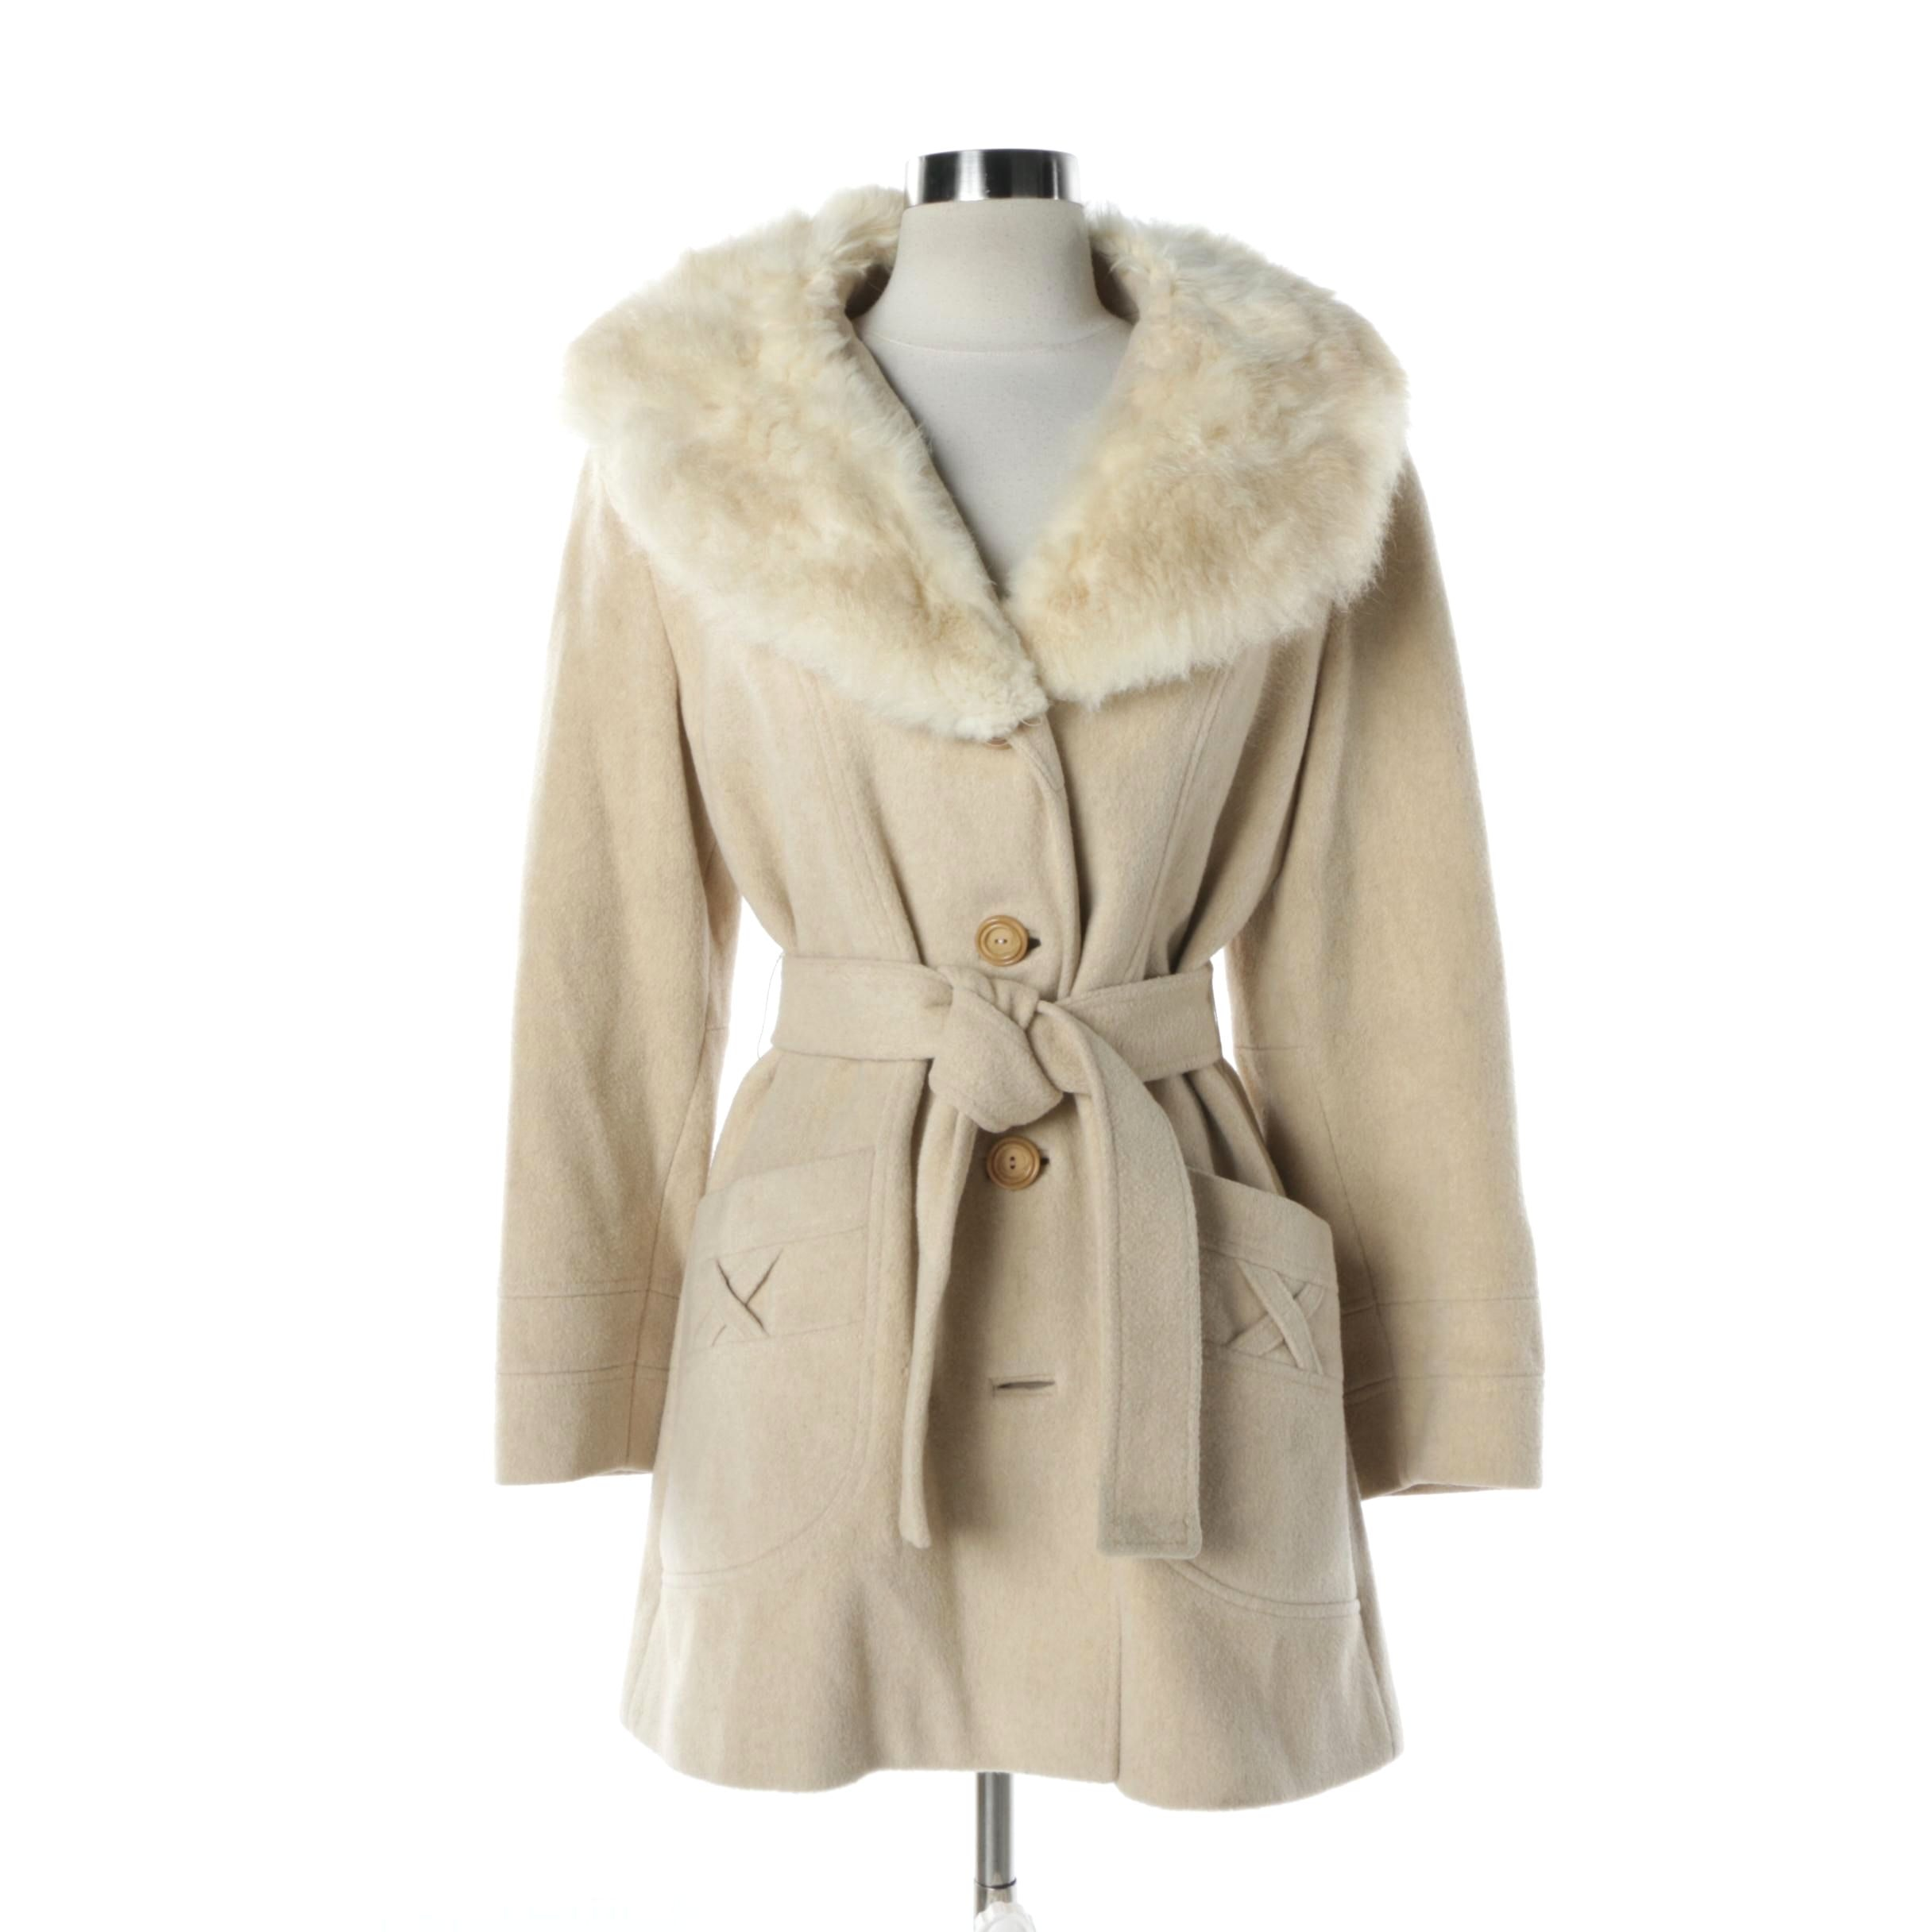 Women's Vintage Beige Wool Coat with Shearling Collar